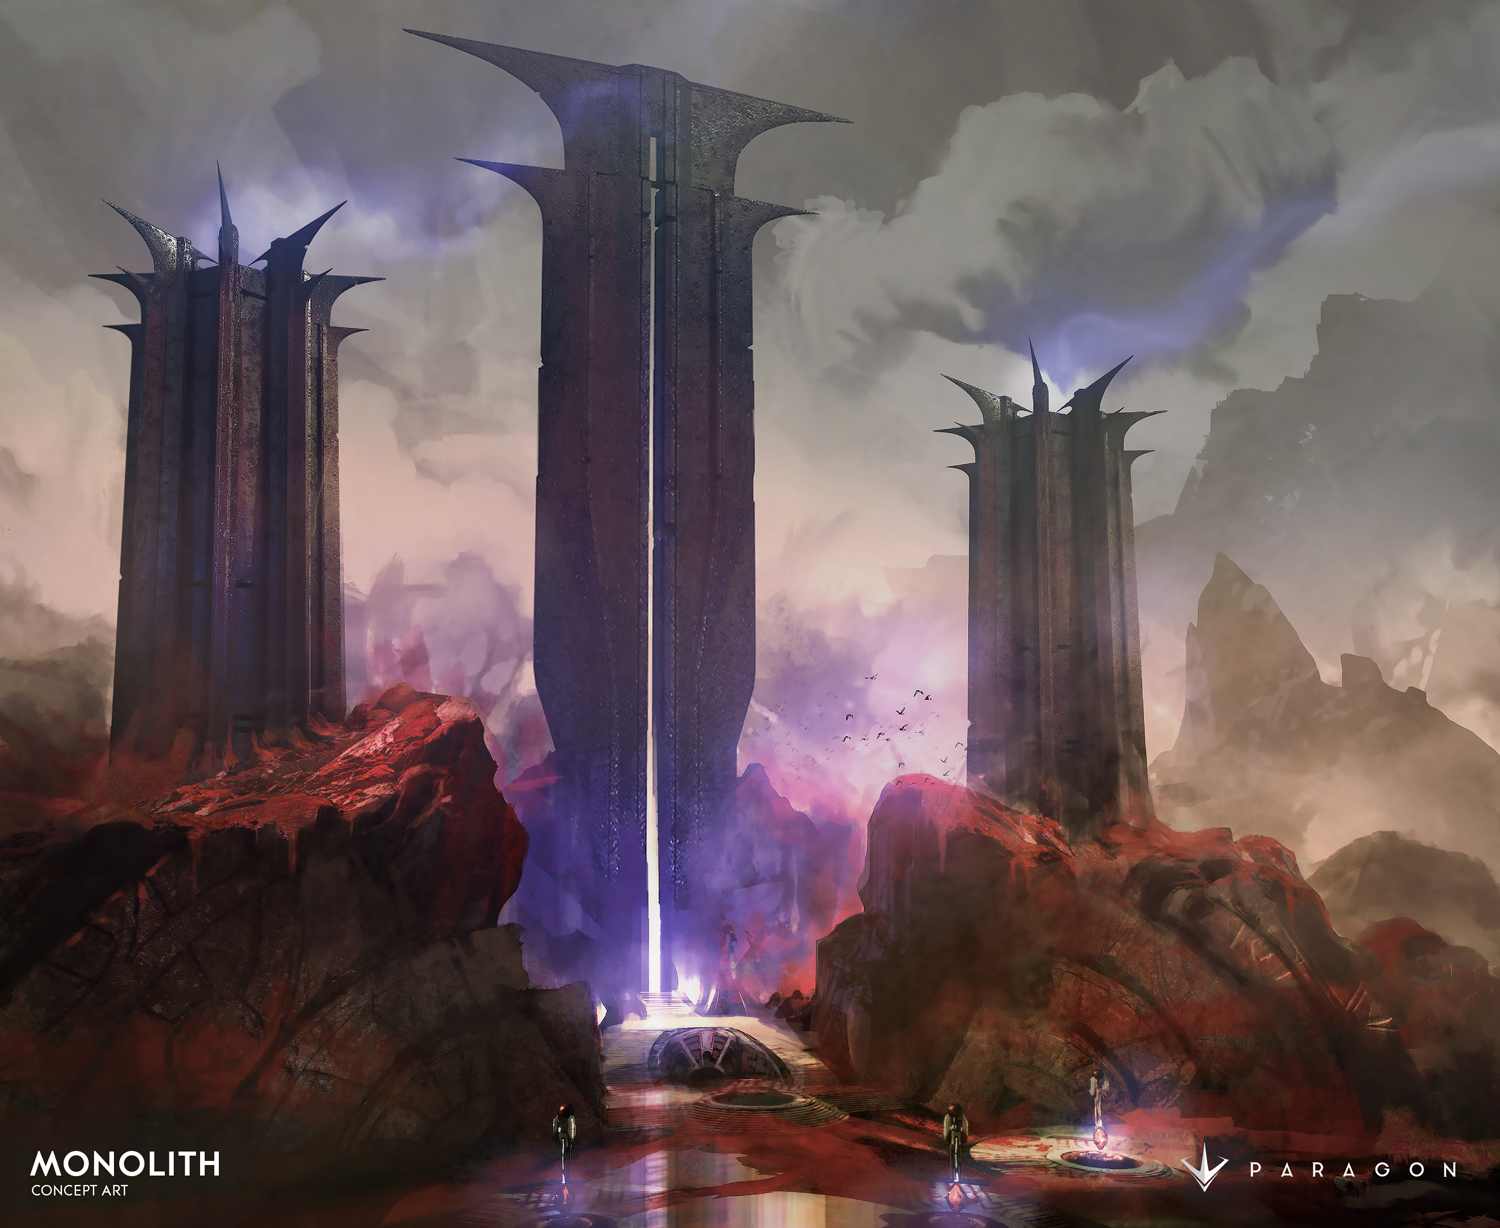 Paragon%2Fblog%2Fthe-road-to-monolith-part-1-paragons-new-map%2FMonolith_ConceptArt-1500x1228-750306e8cda755057cf461505d09e2f17758868b